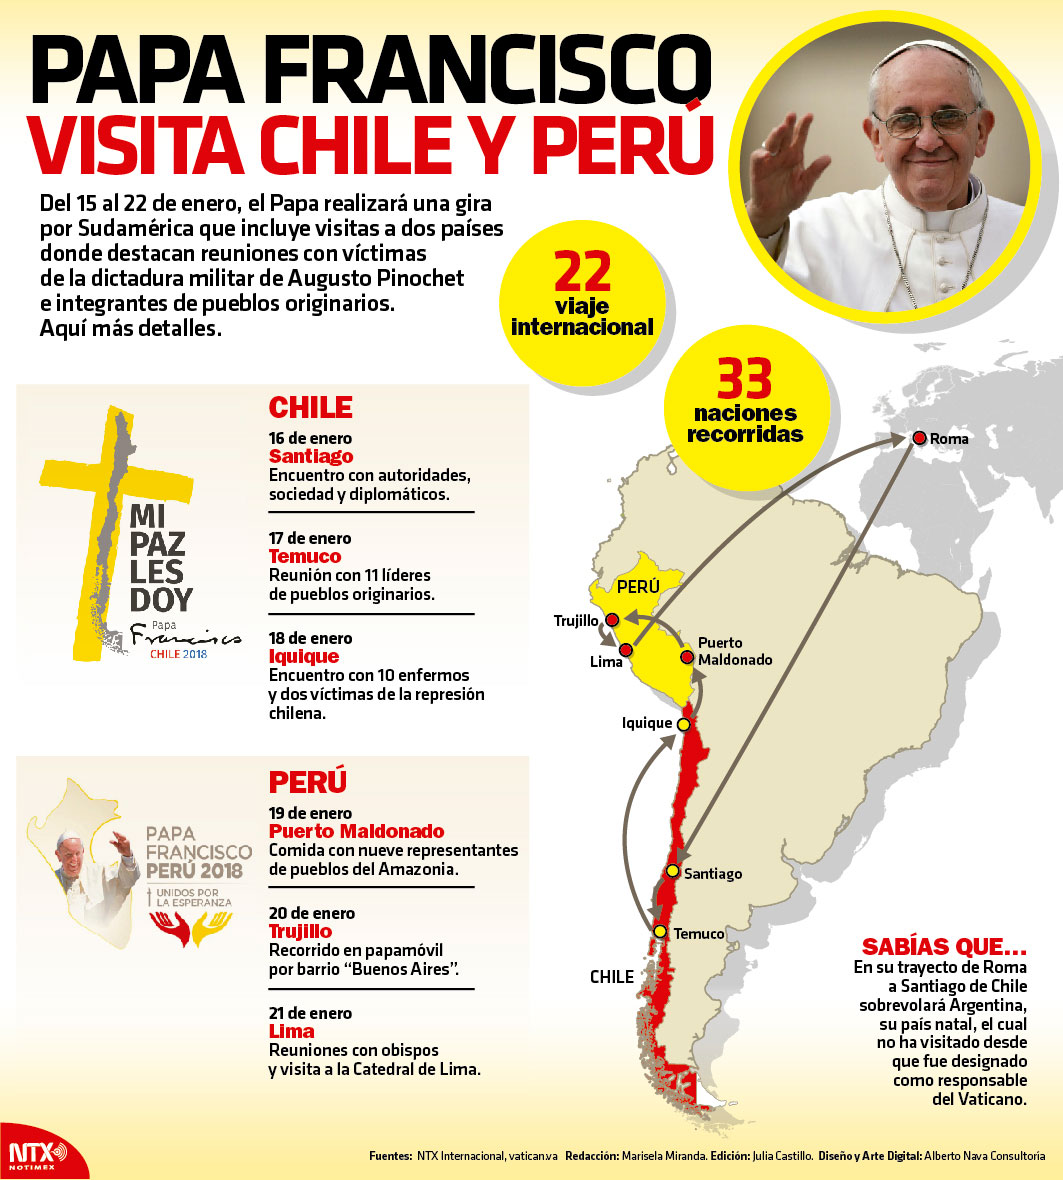 Papa Francisco visita Chile y Perú